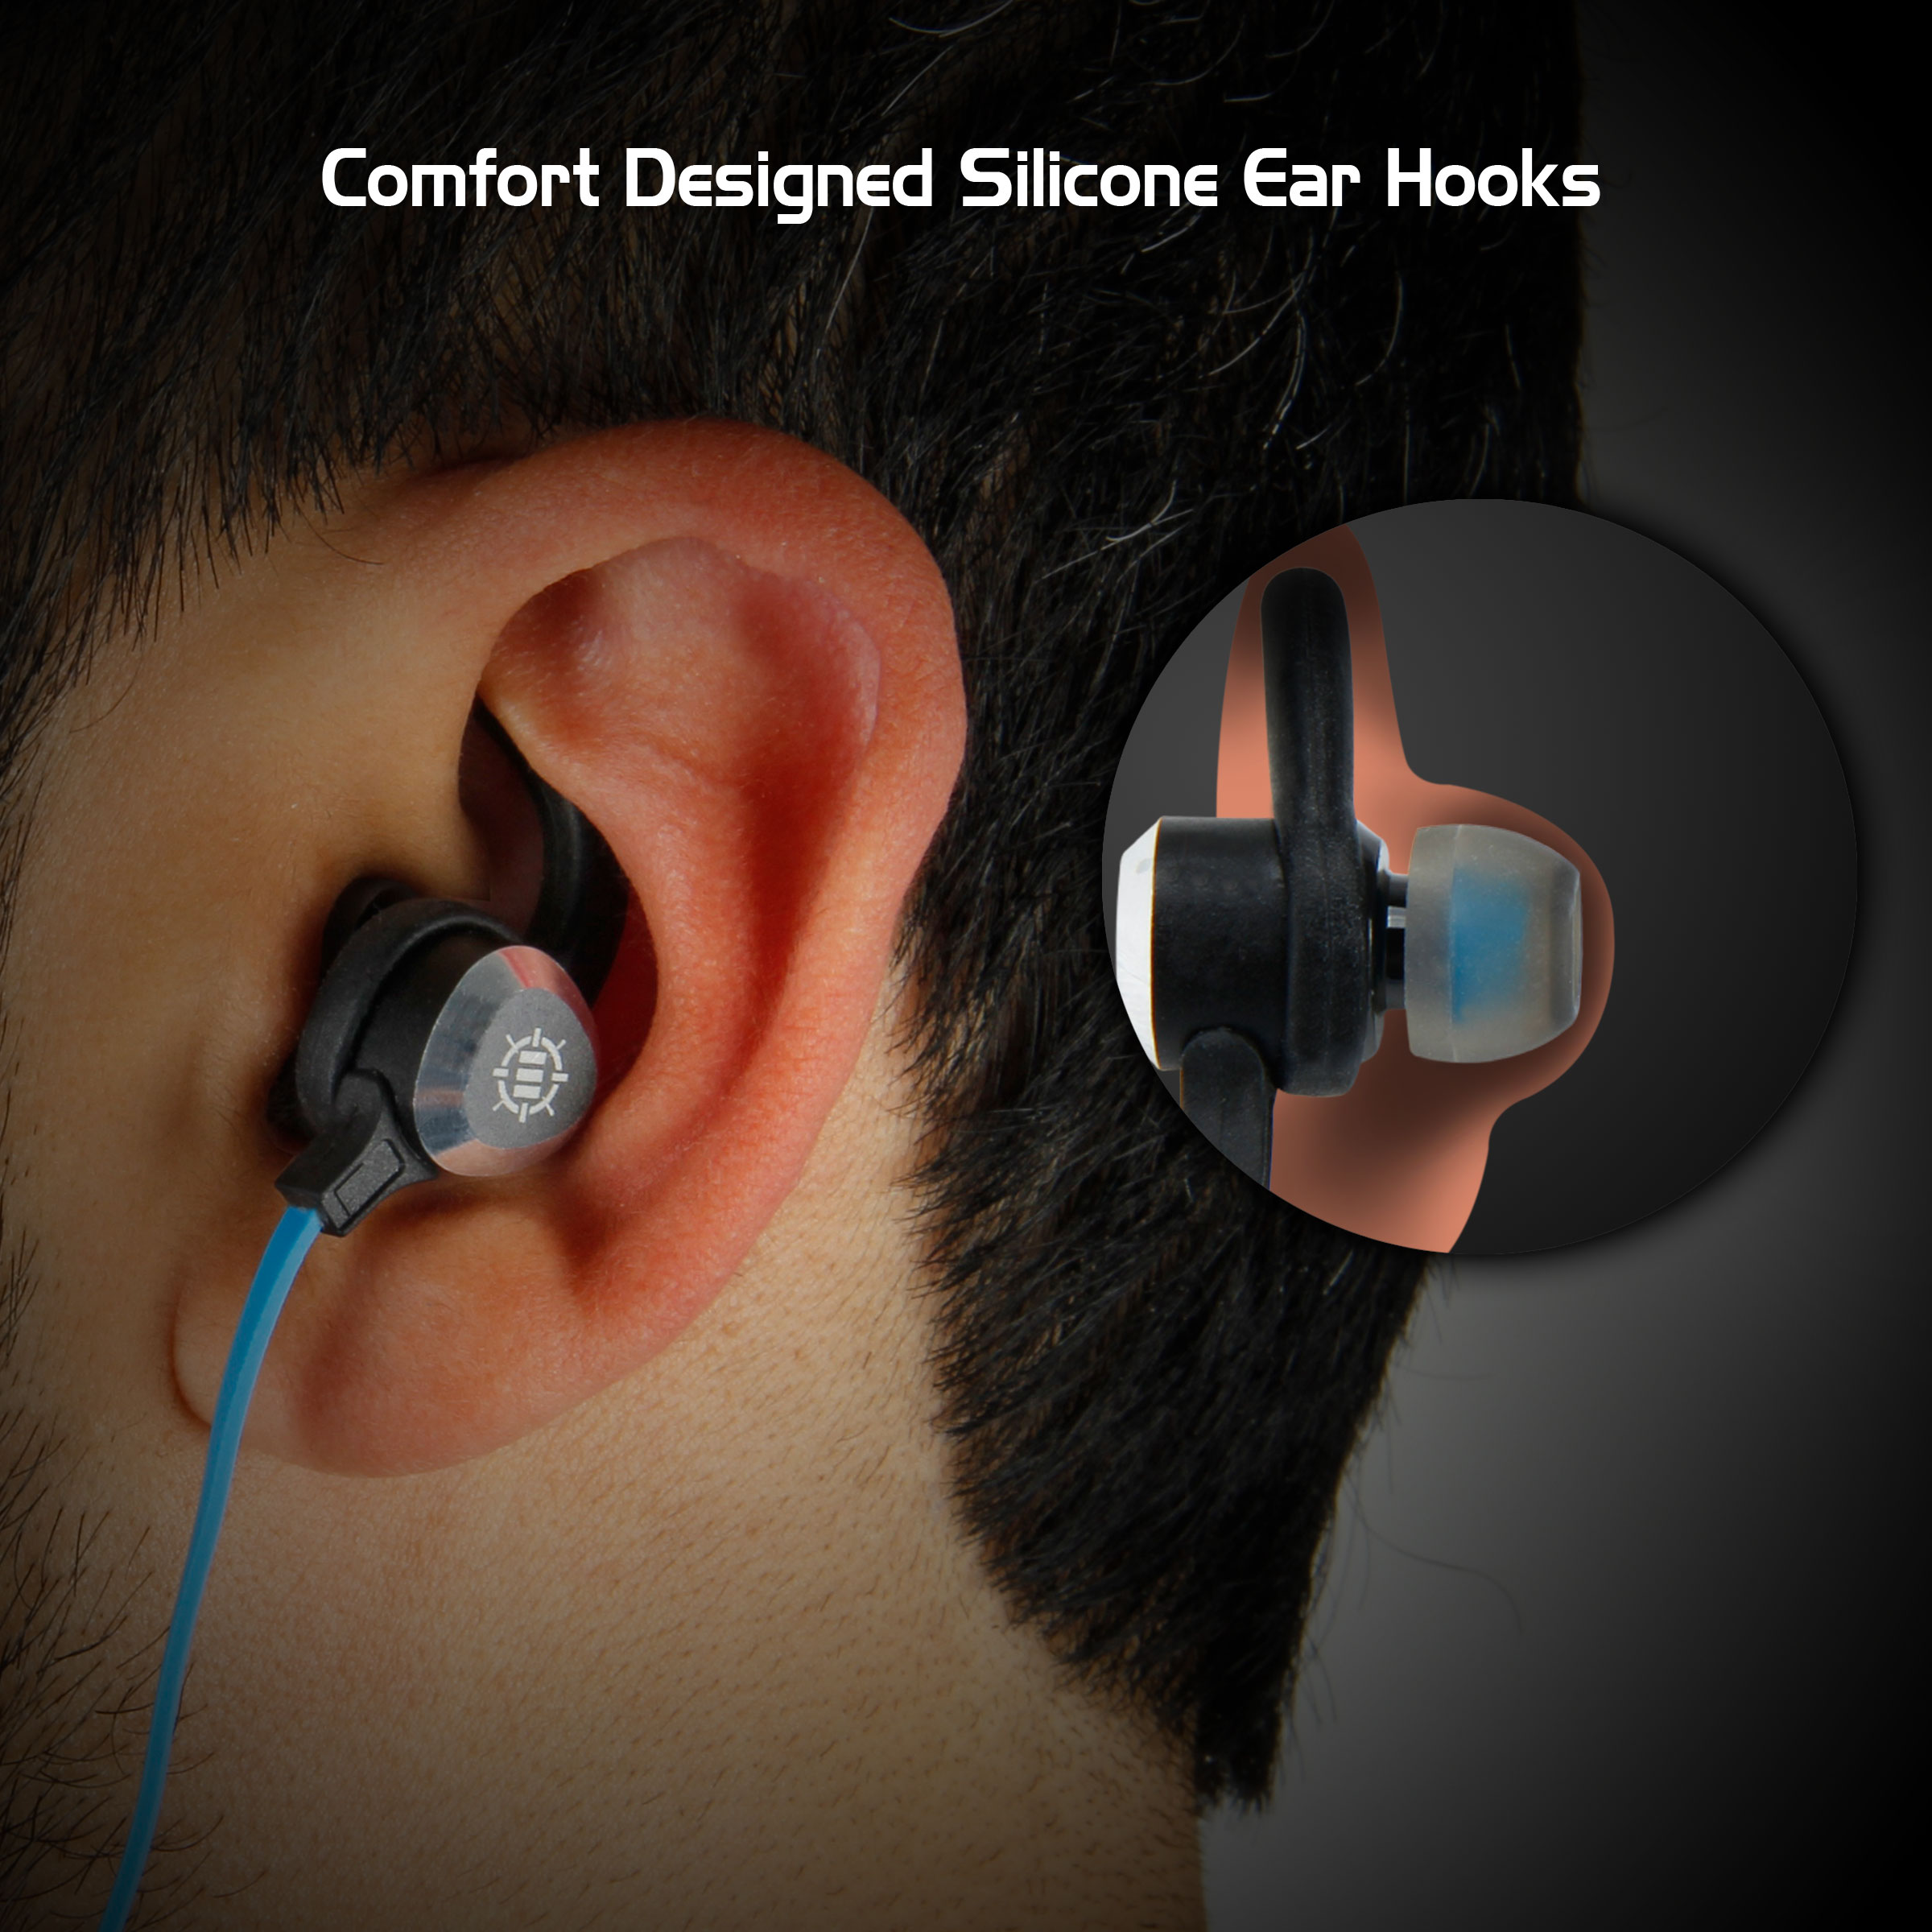 ENHANCE Gaming Earbuds with Vibration & Microphone for PC , PS4 , Xbox One & More - Comfort Ear Hook 3